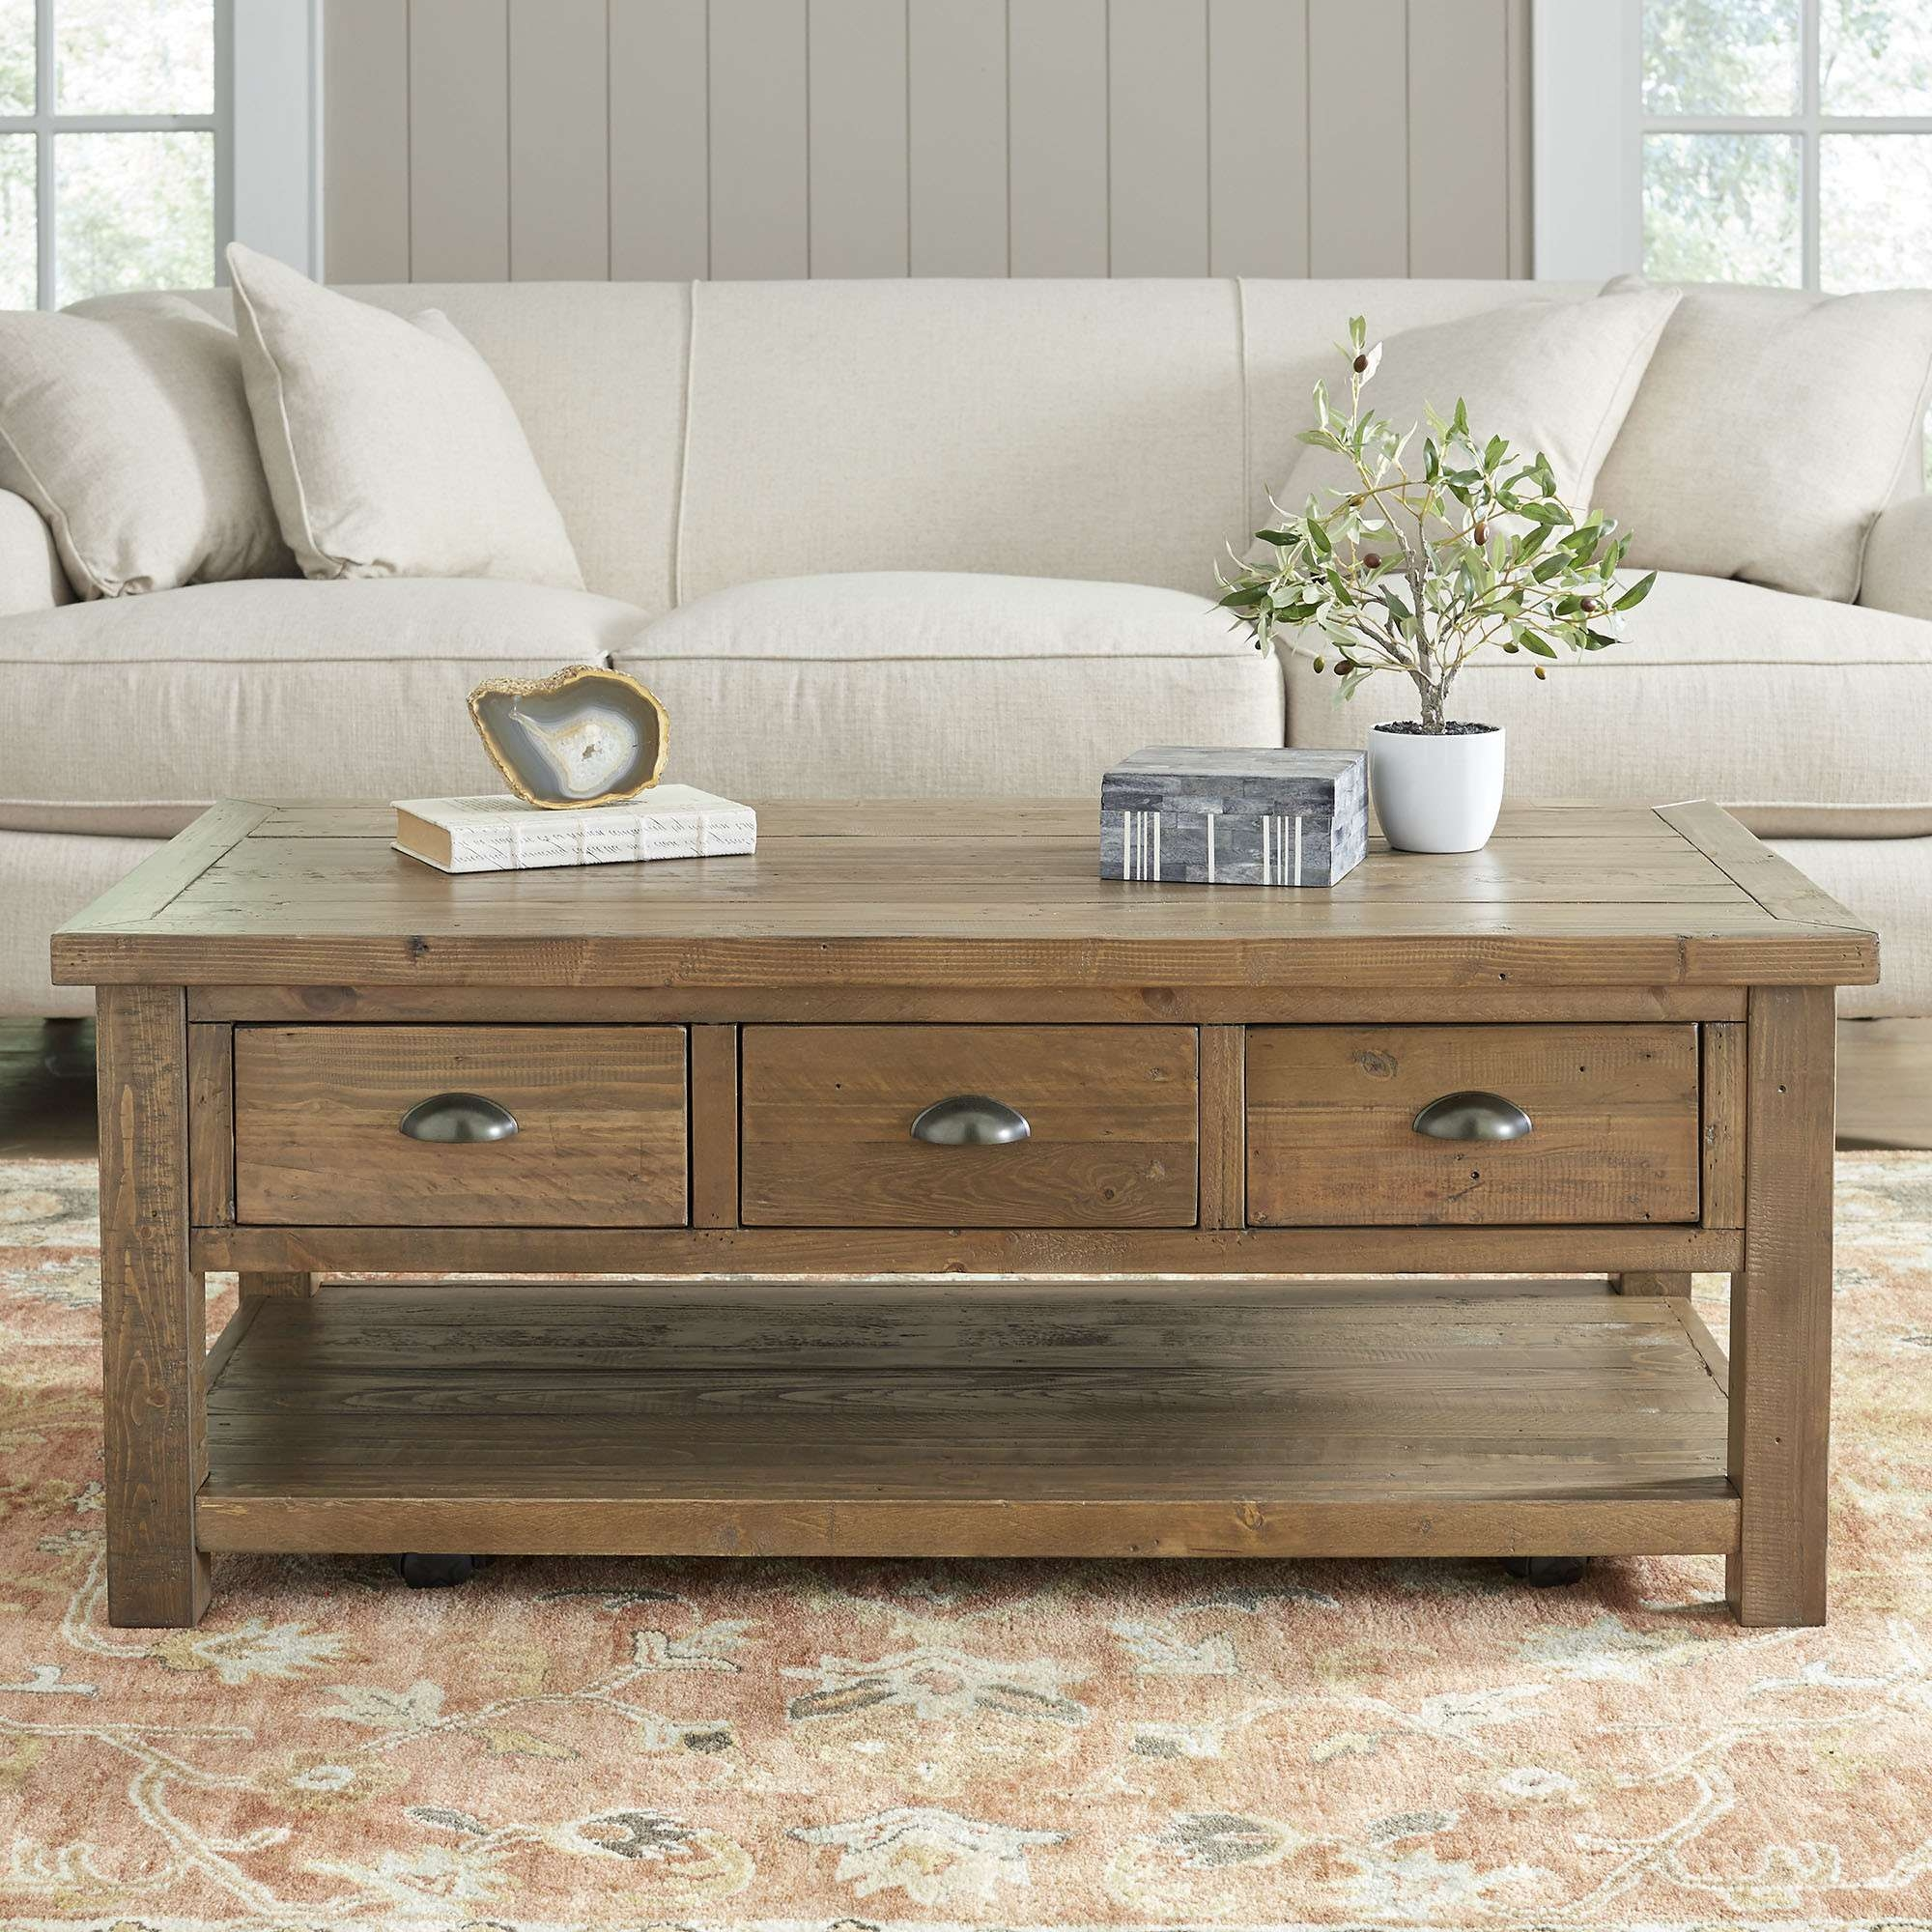 Stylish Coffee Table With Drawers (View 17 of 20)